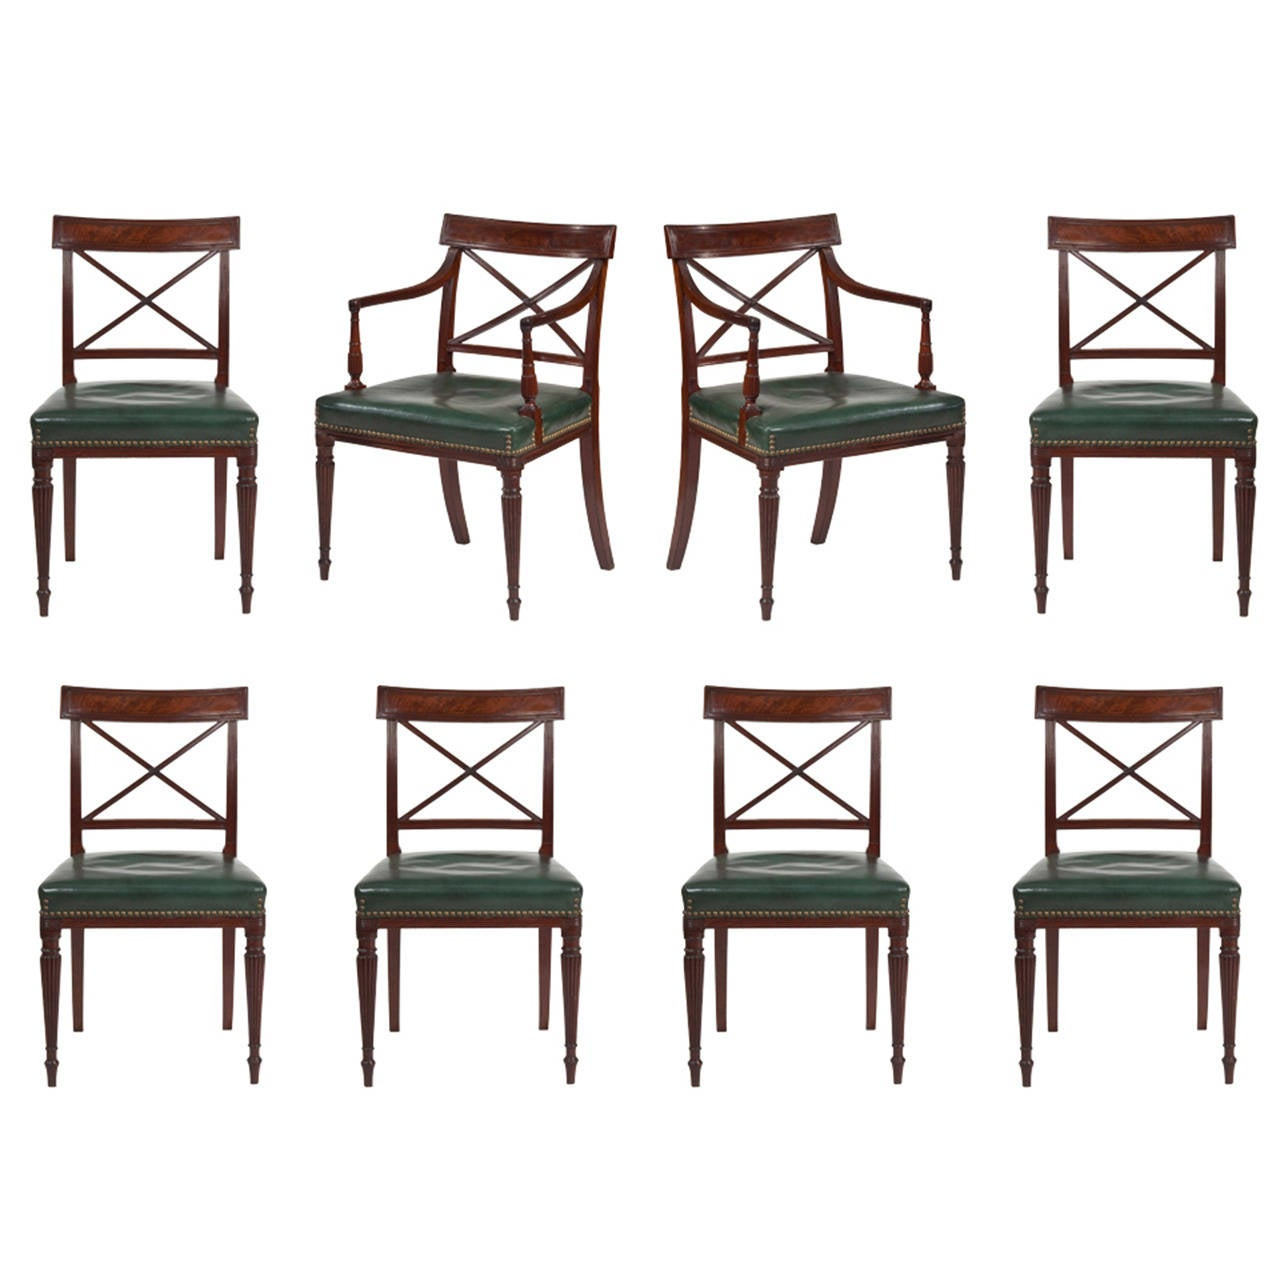 Regency dining chairs at 1stdibs for Regency furniture living room sets